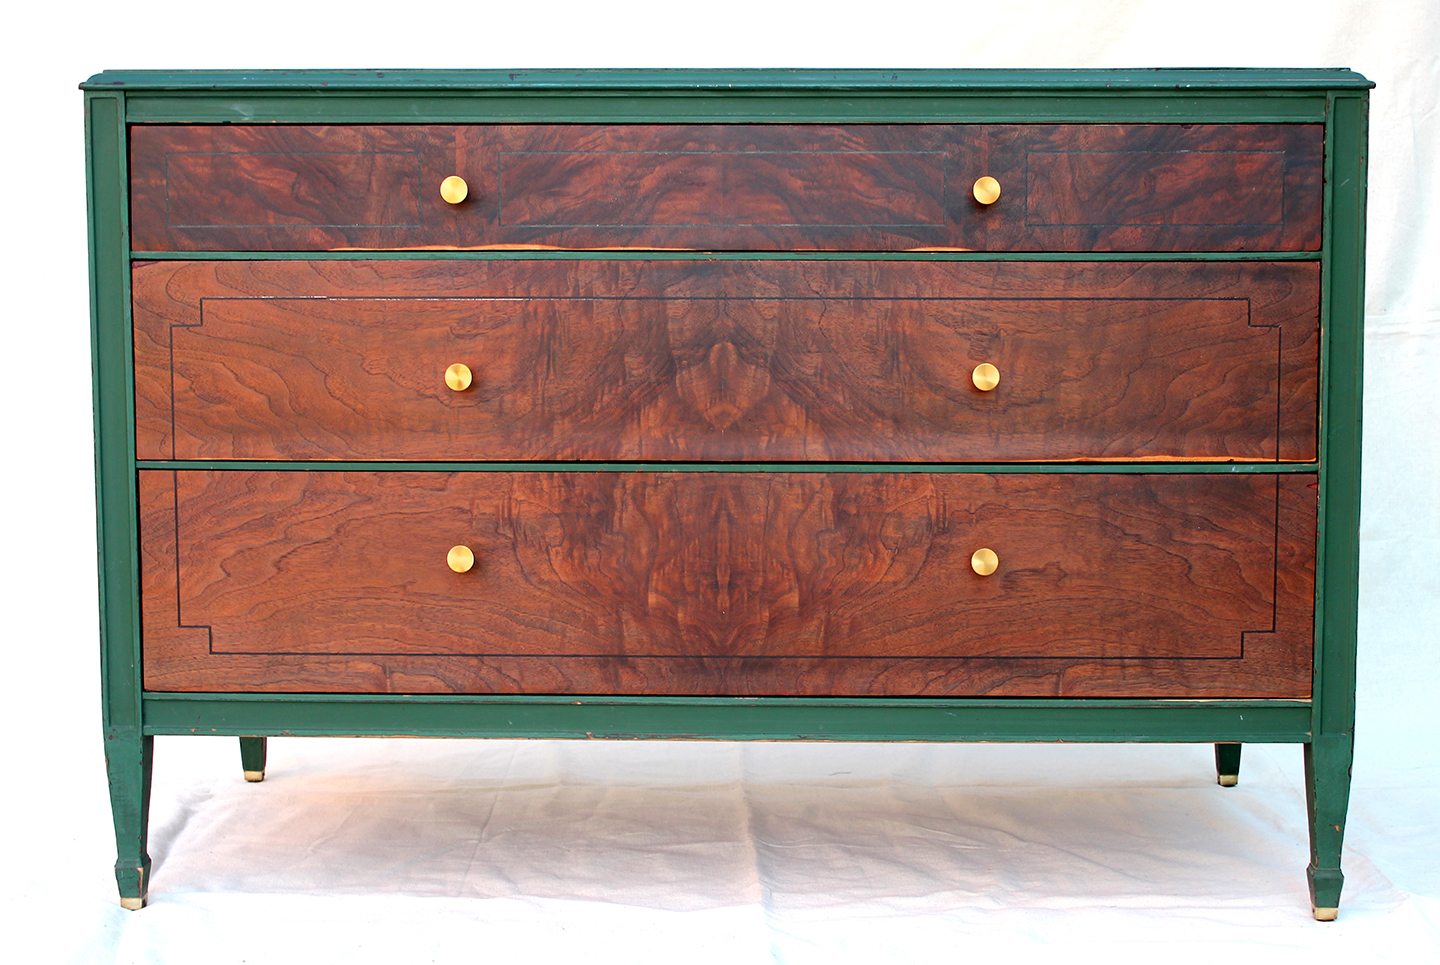 Antique Sligh Furniture Company low dresser - SOLD - Lets.rebuild.: Antique Sligh Furniture Company Low Dresser - SOLD